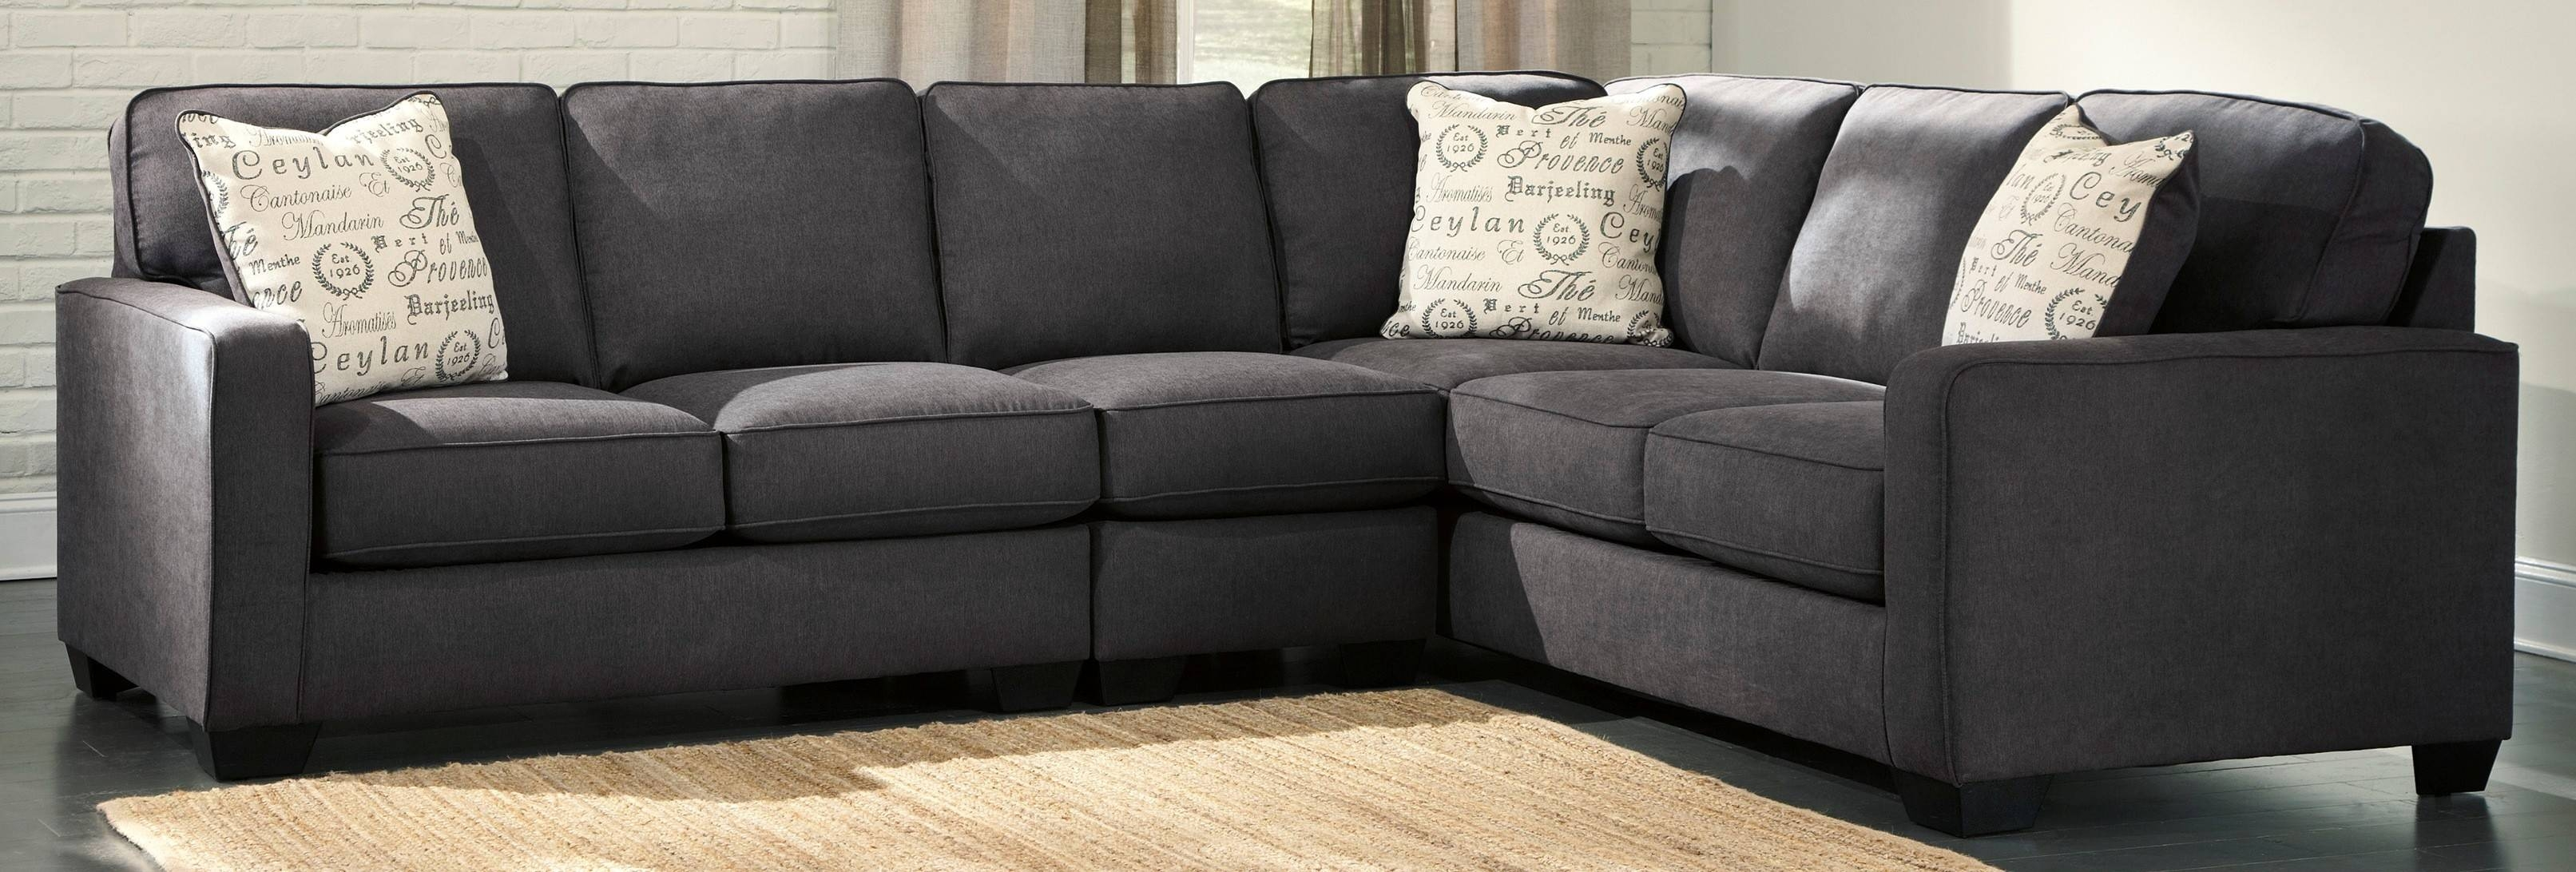 Interior: Gorgeous Lady Charcoal Sectional For Living Room for Individual Sectional Sofas Pieces (Image 6 of 15)